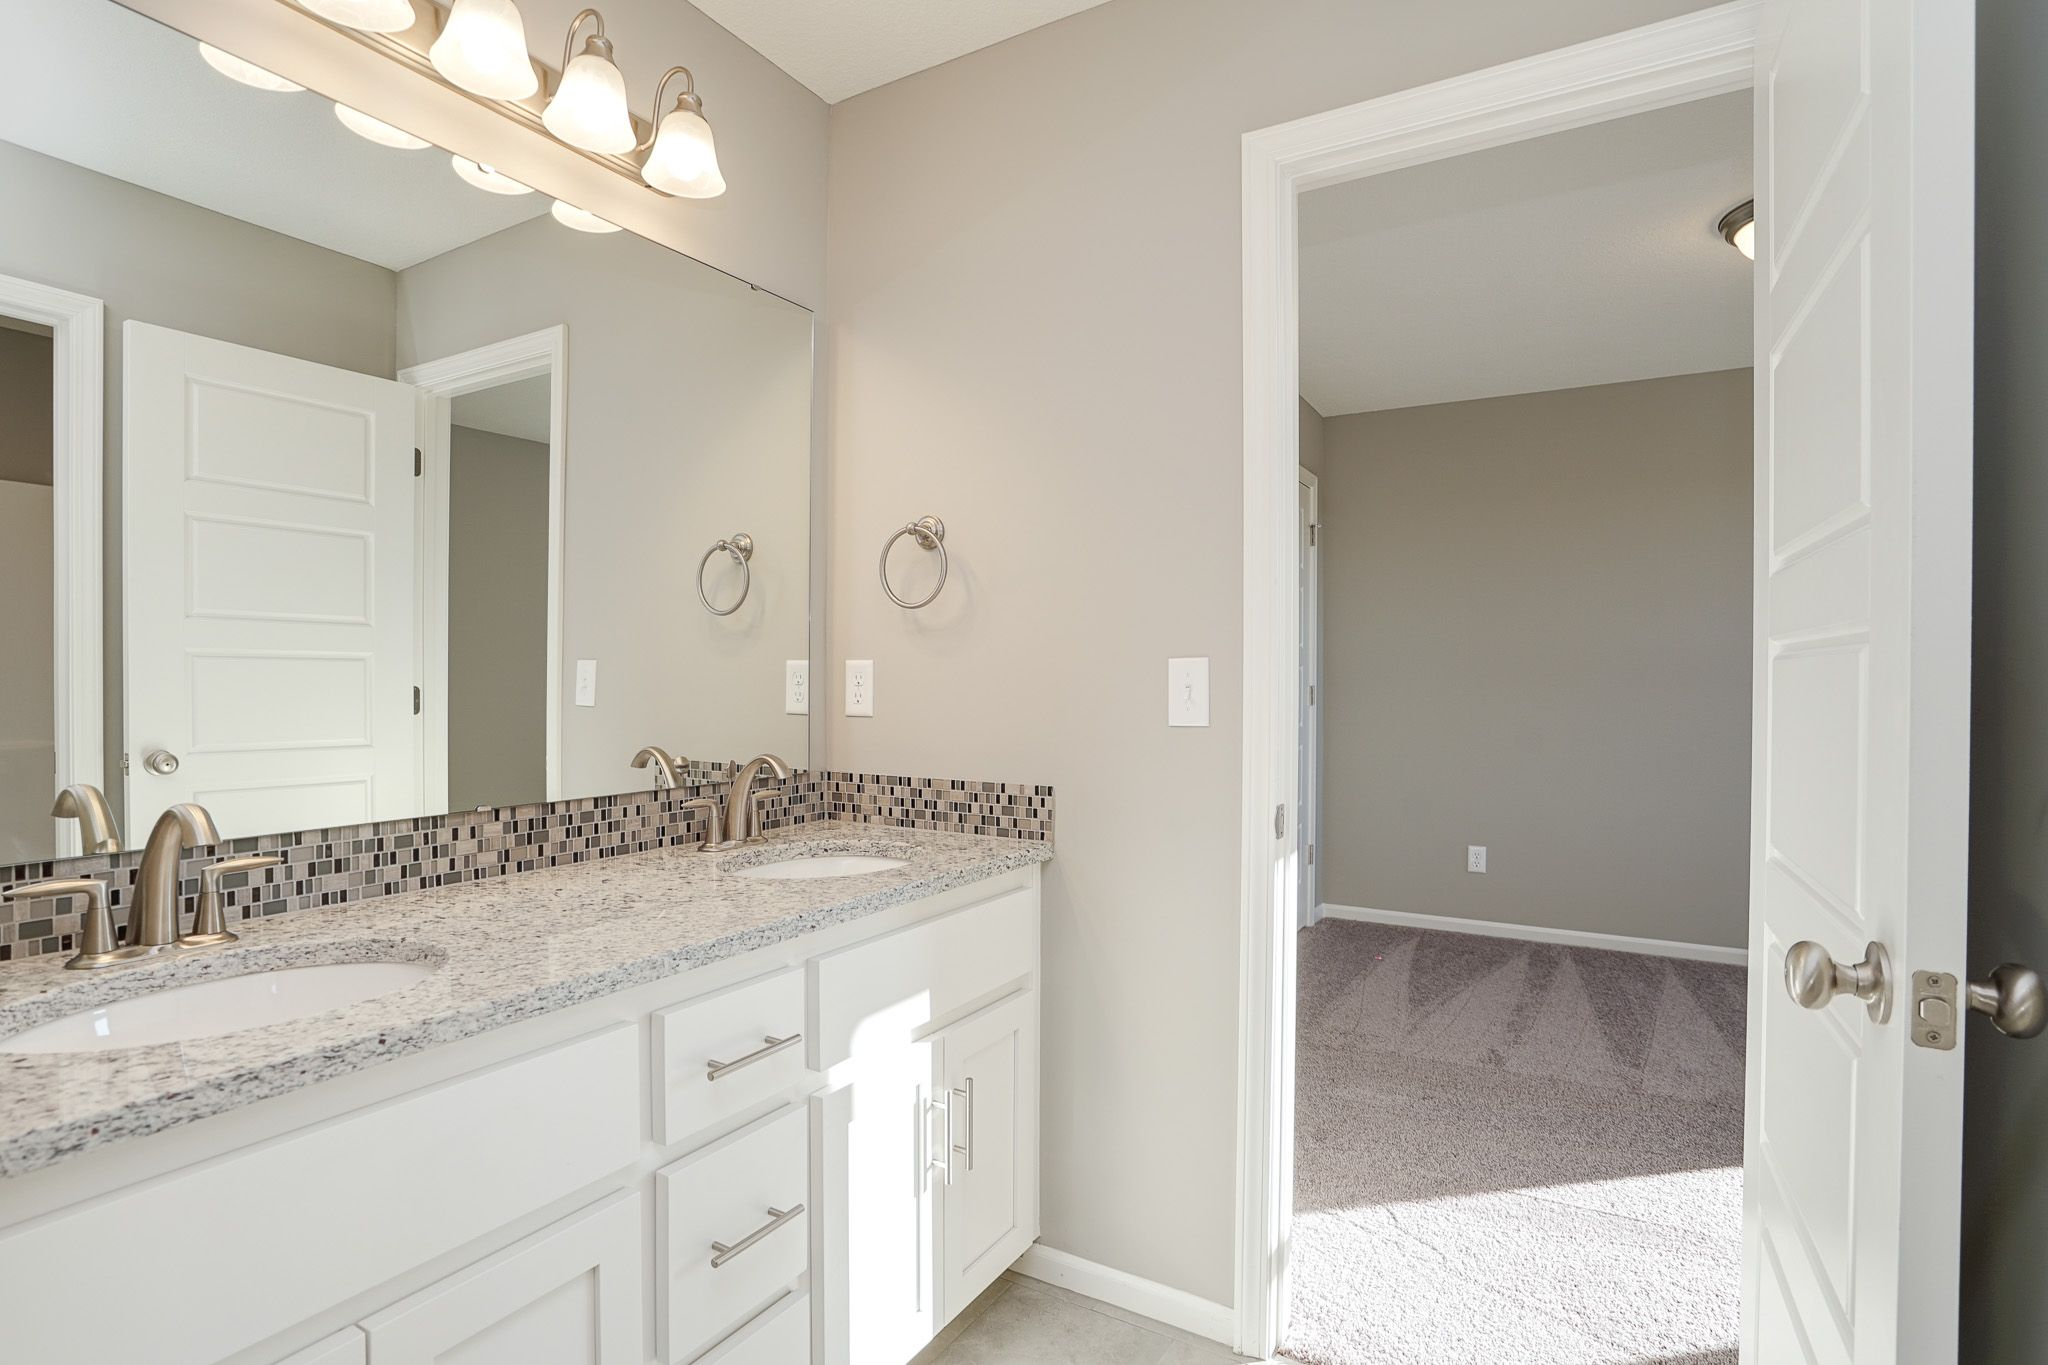 Bathroom featured in the Winfield By Summit Homes in Kansas City, MO